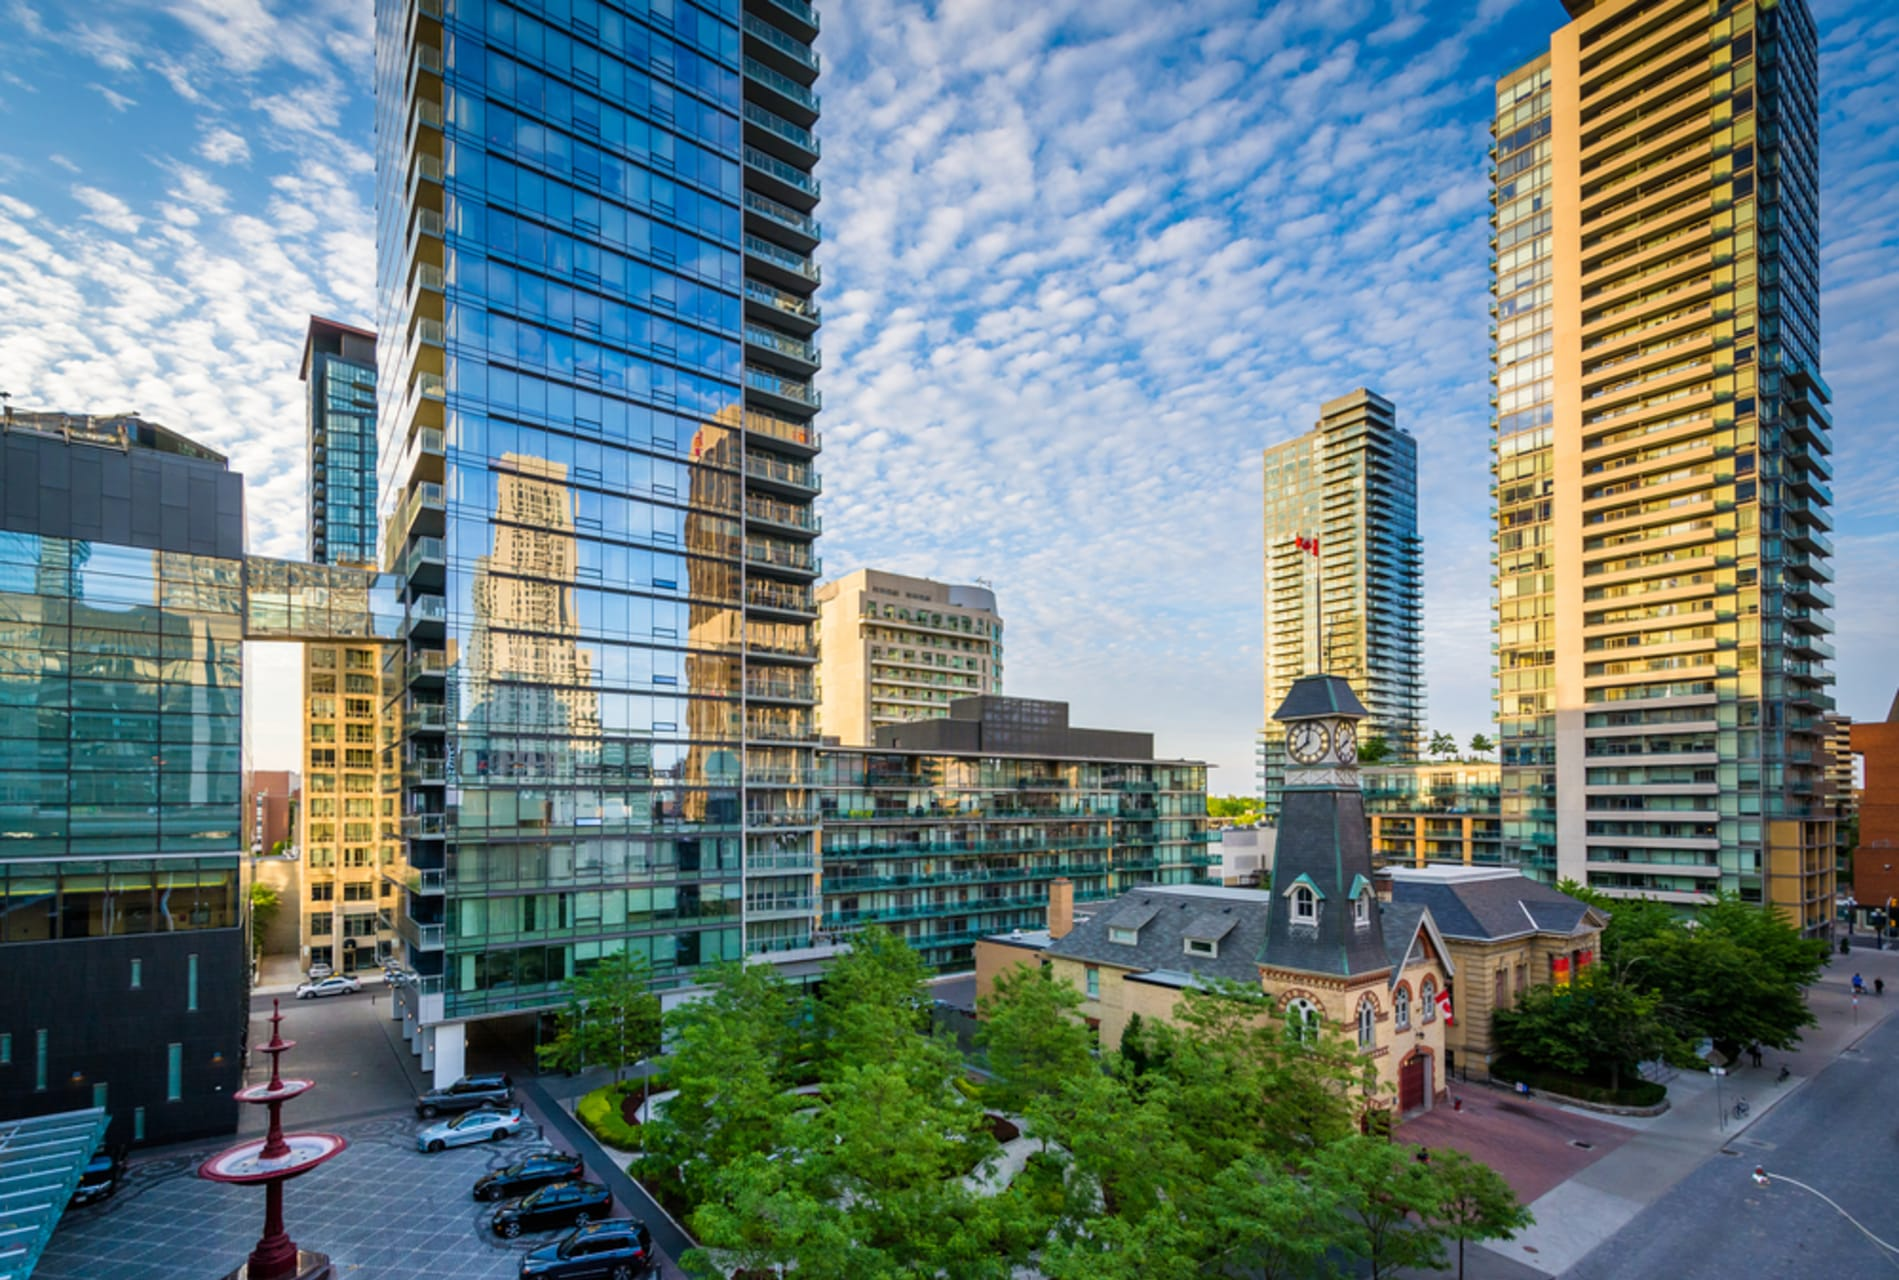 Greater Toronto Area - Discover Yorkville-Bloor: A Heritage Neighbourhood Re-Fashioned for the 21st Century